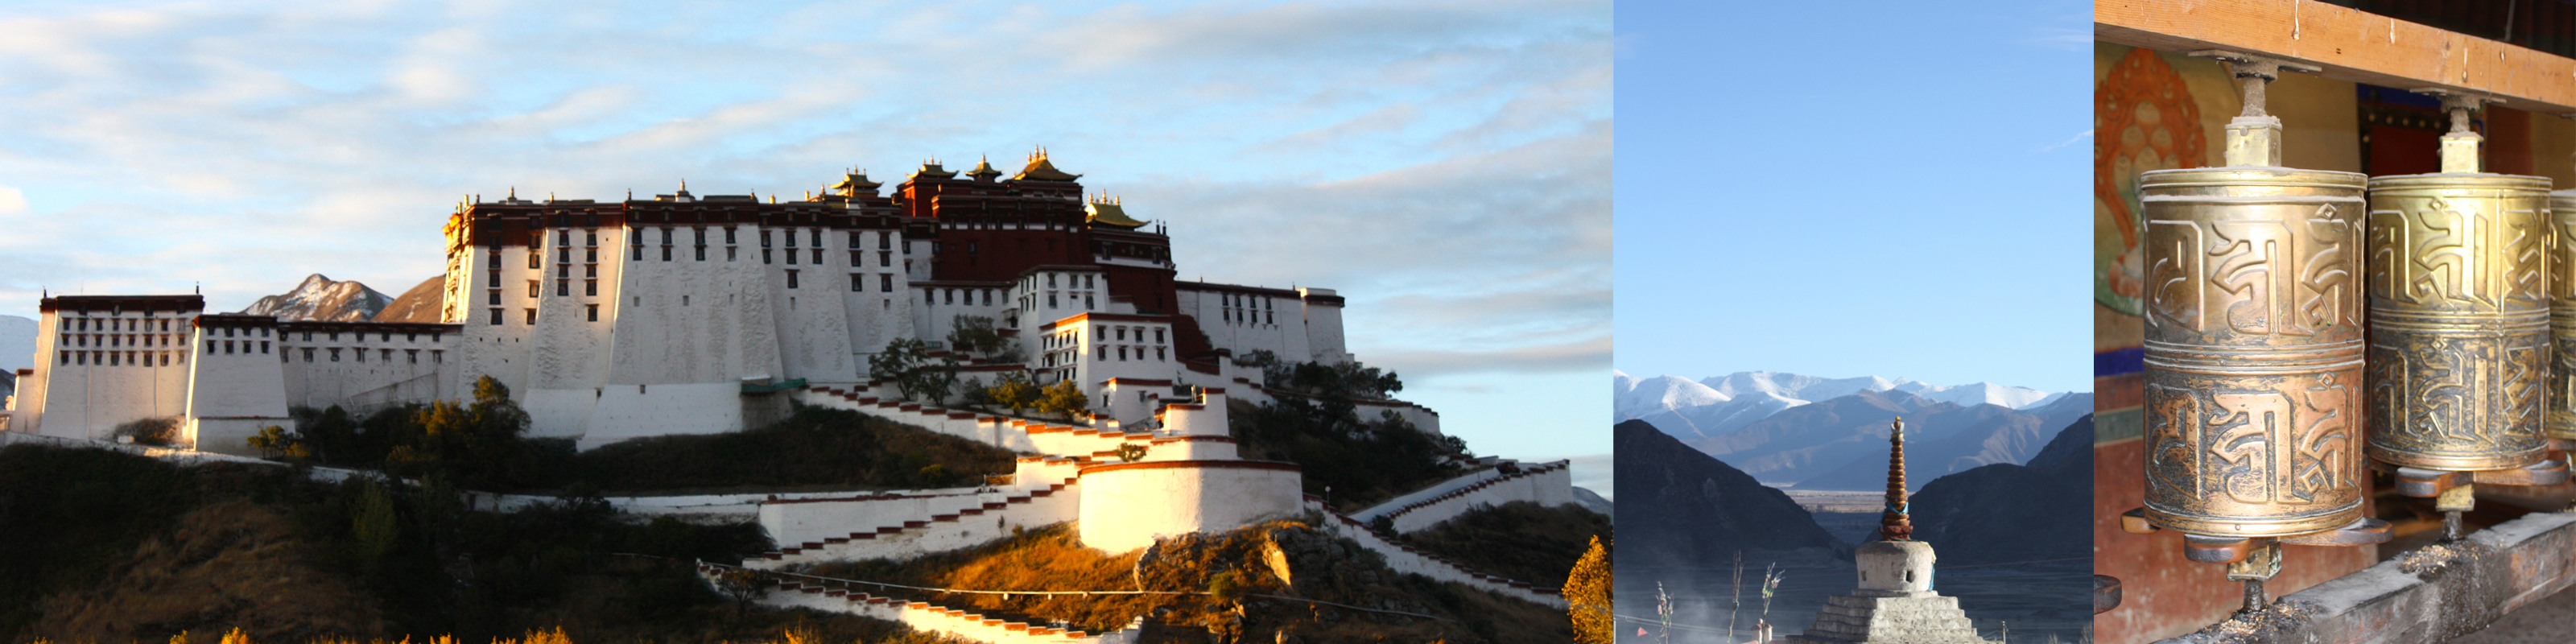 Images of Tibet: the Potala at sunrise; a chorten; prayer wheels in a monastery